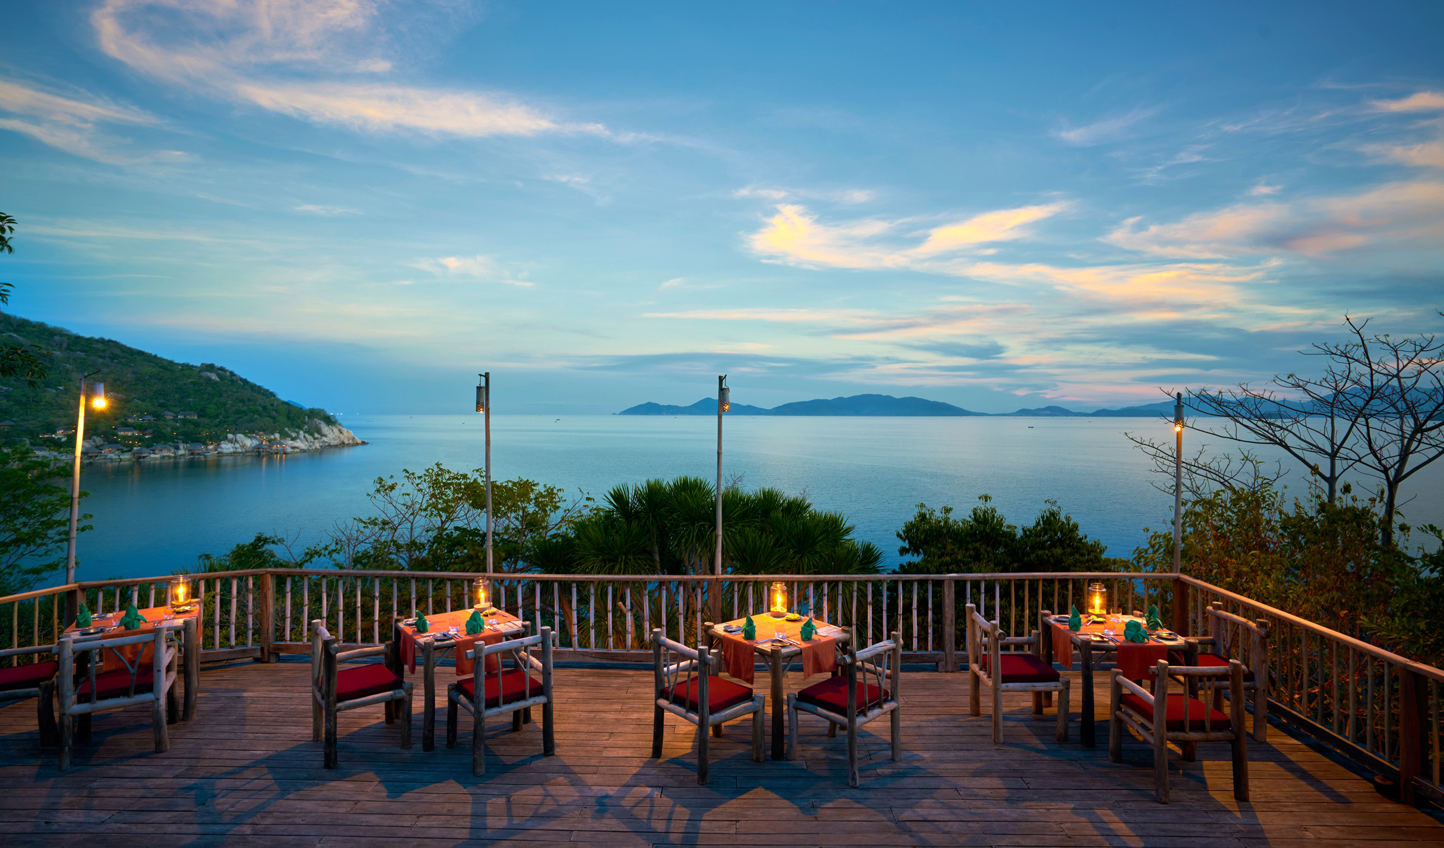 Dine on the rocks with fantastic sunset views over the bay